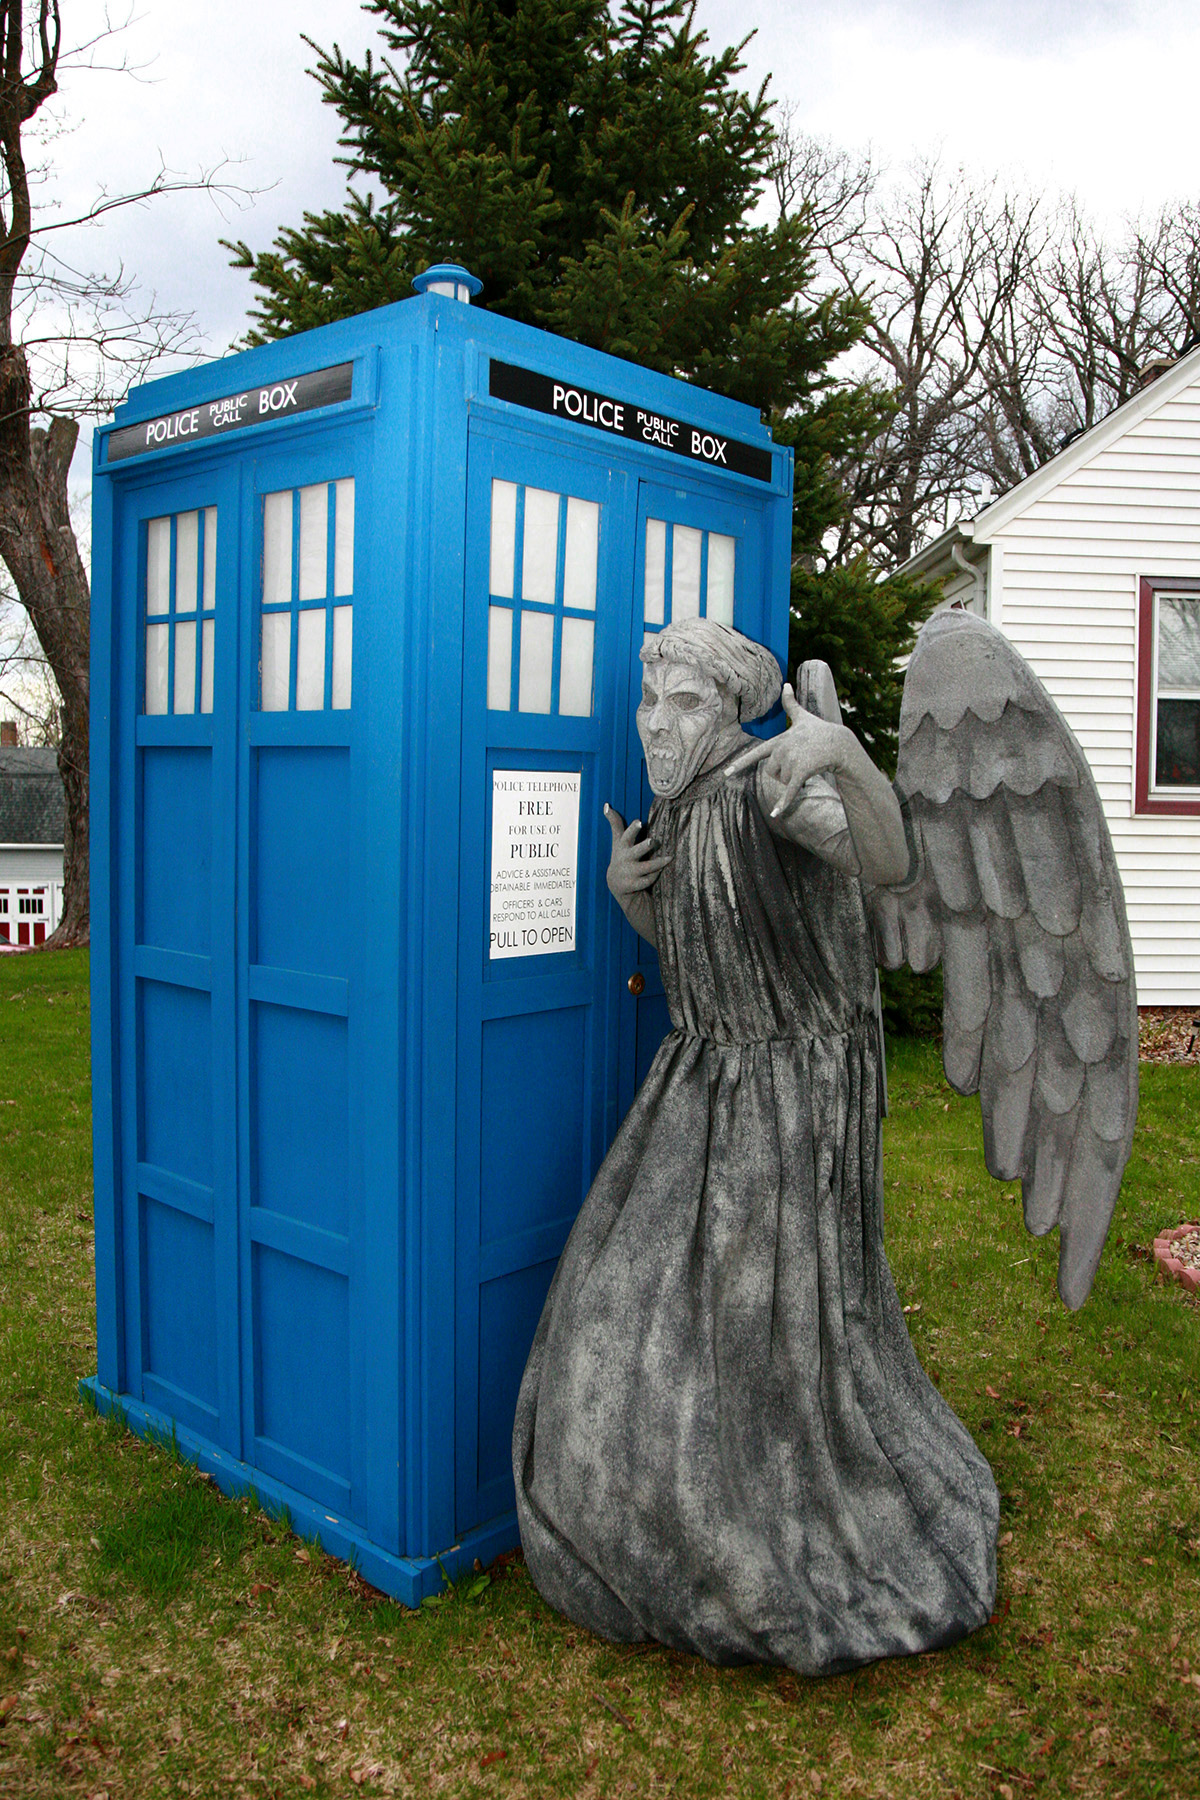 A person dressed as a weeping angel, leaning on a full sized TARDIS.